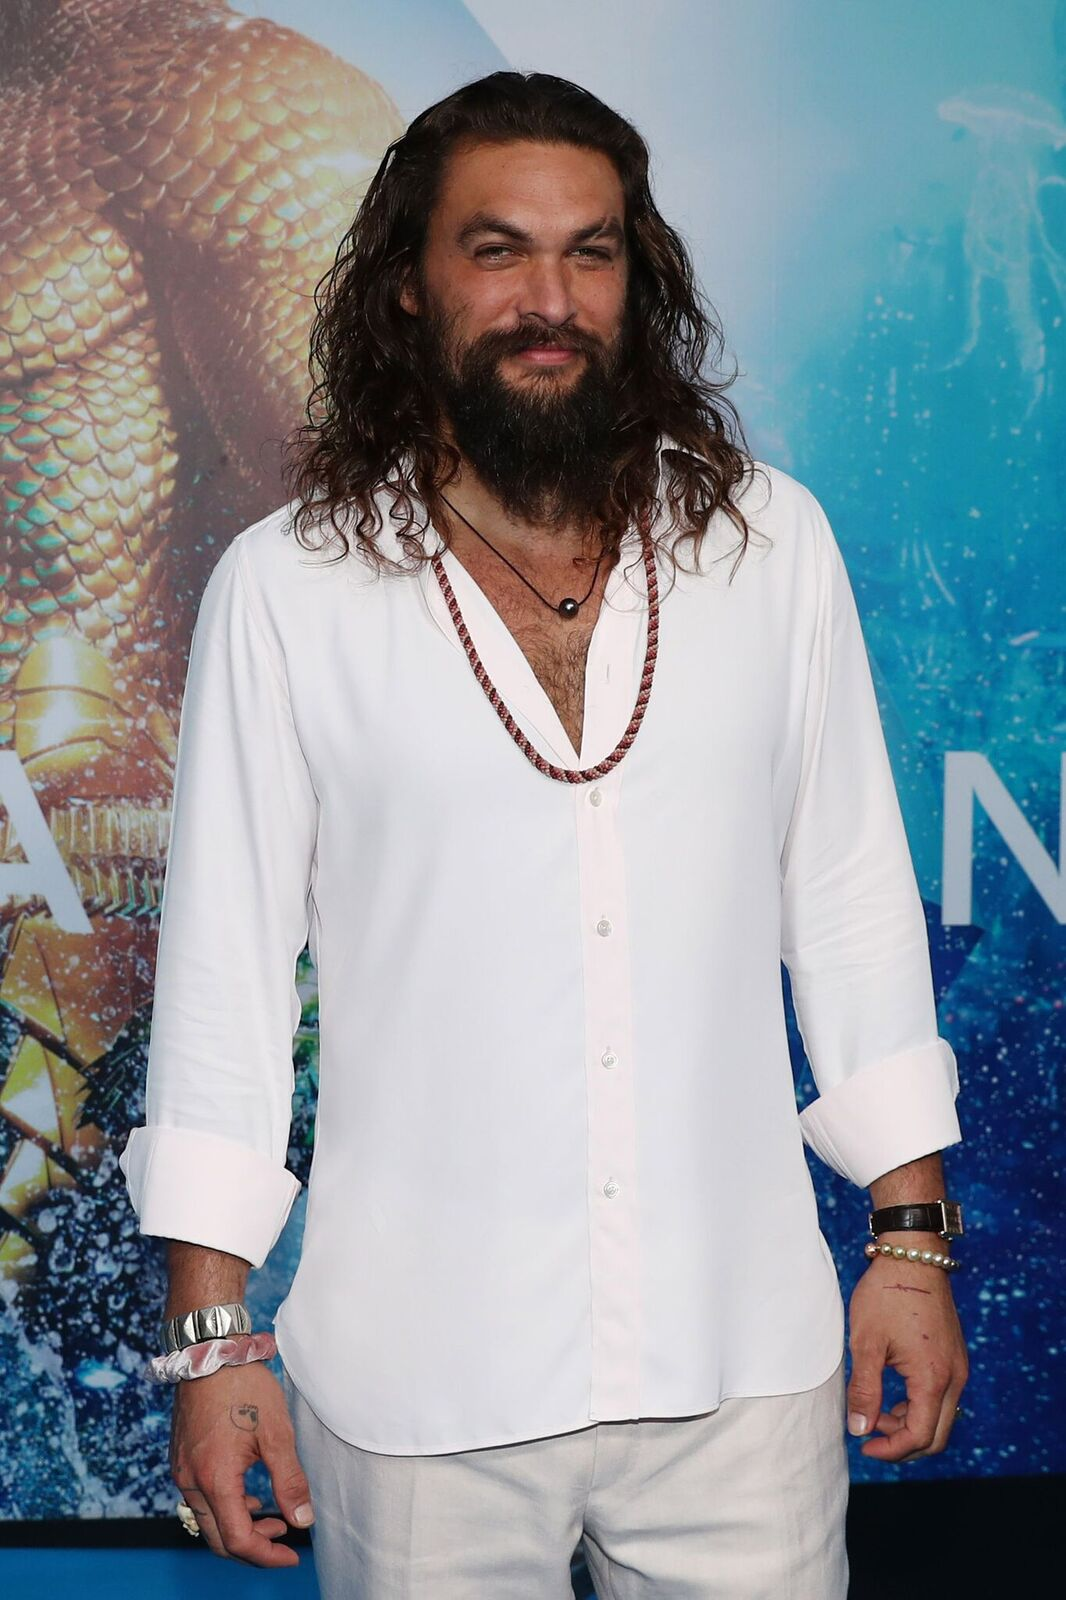 Jason Momoa poses at the Australian premiere of Aquaman on December 18, 2018 in Gold Coast, Australia | Photo: Getty Images